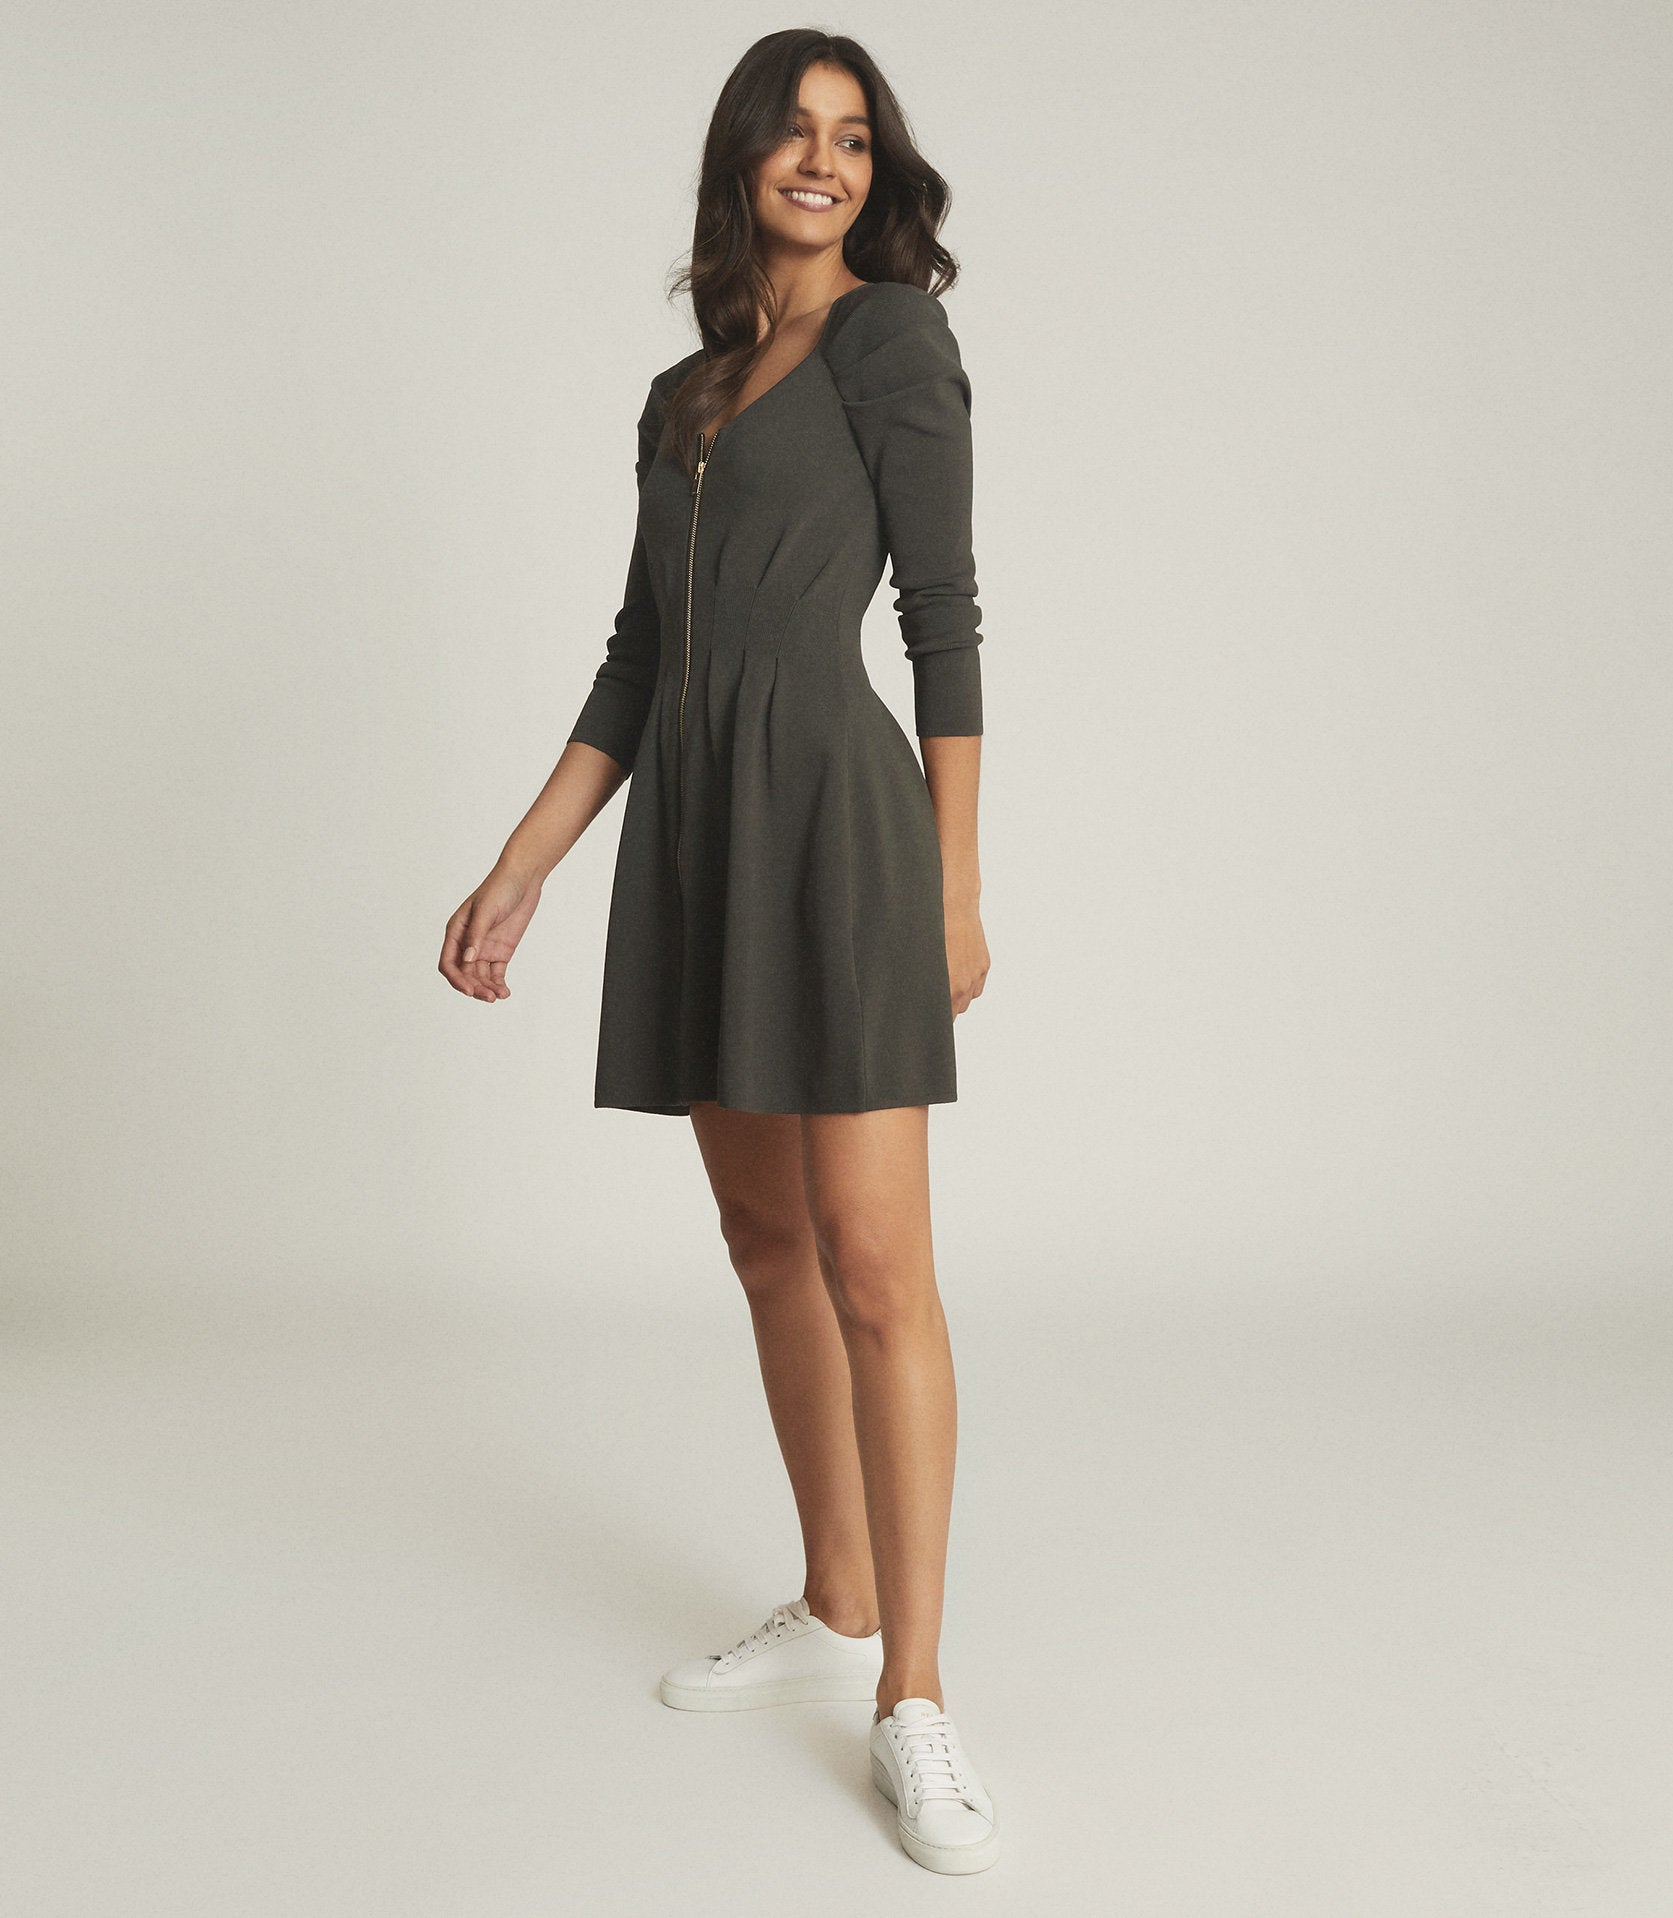 reiss dress sale